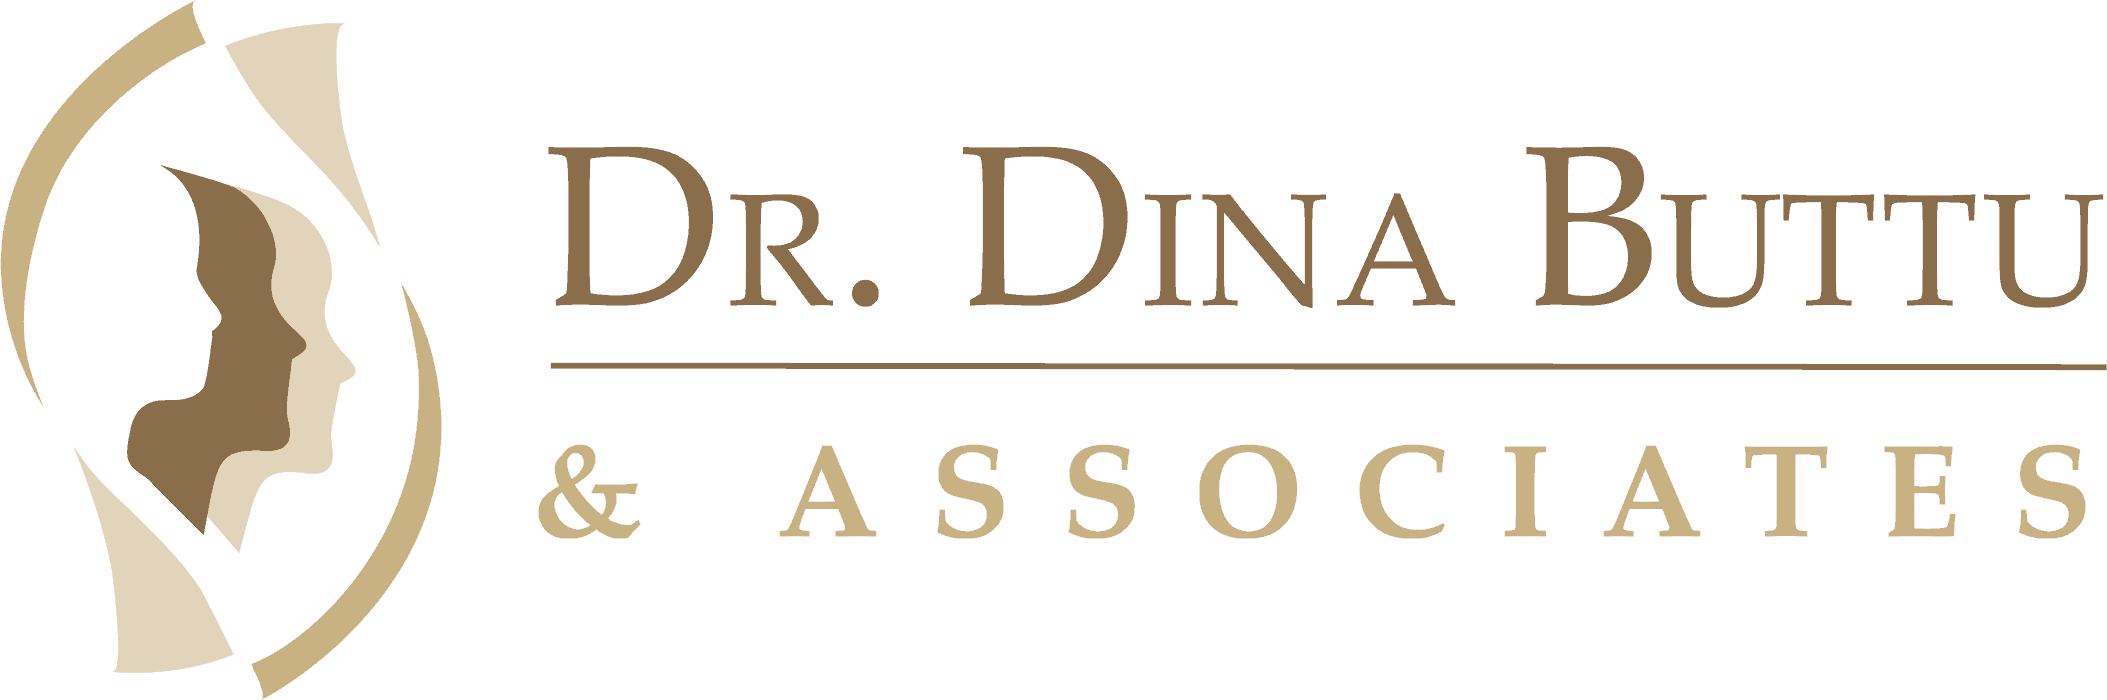 Dr. Dina Buttu & Associates | Psychological Services